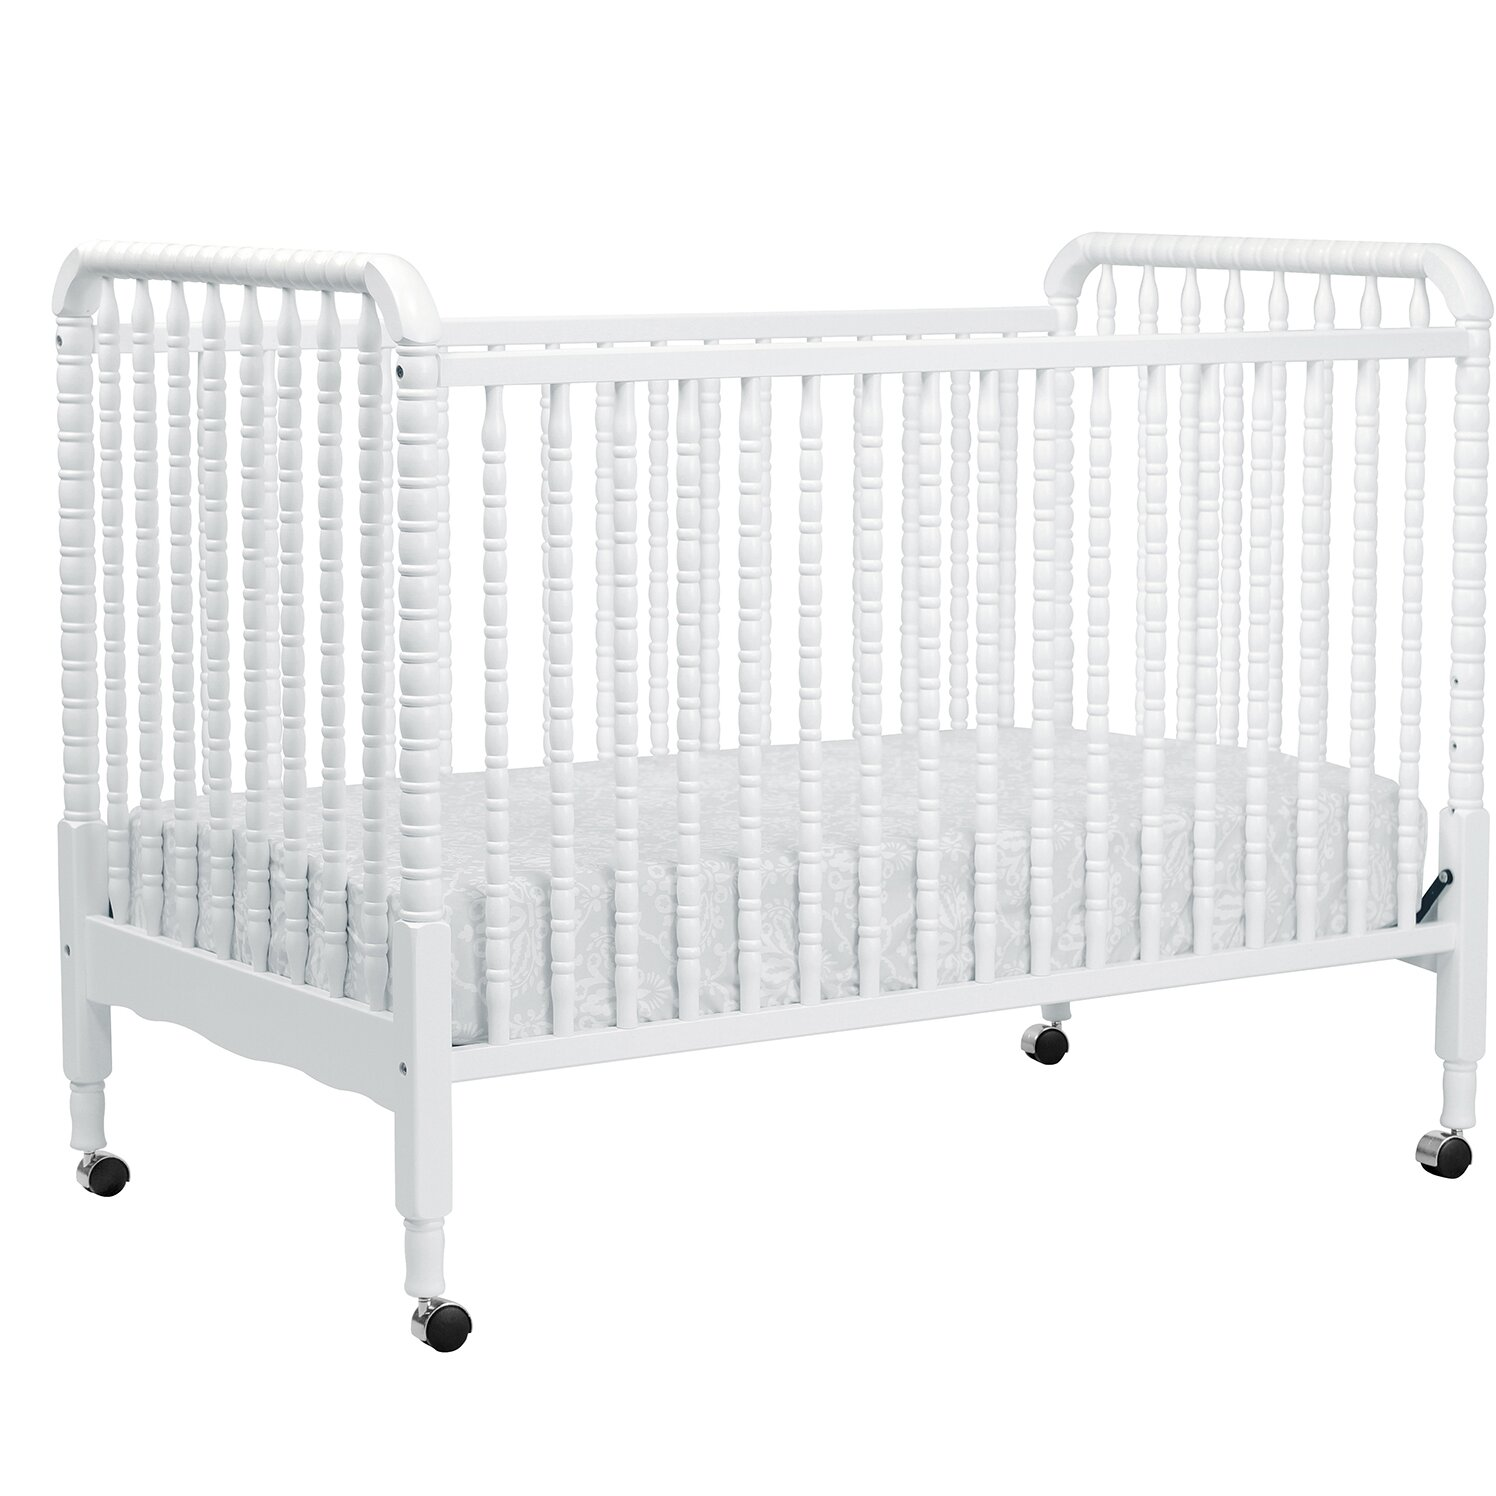 Used crib for sale edmonton - Davinci Jenny Lind 3 In 1 Convertible Crib